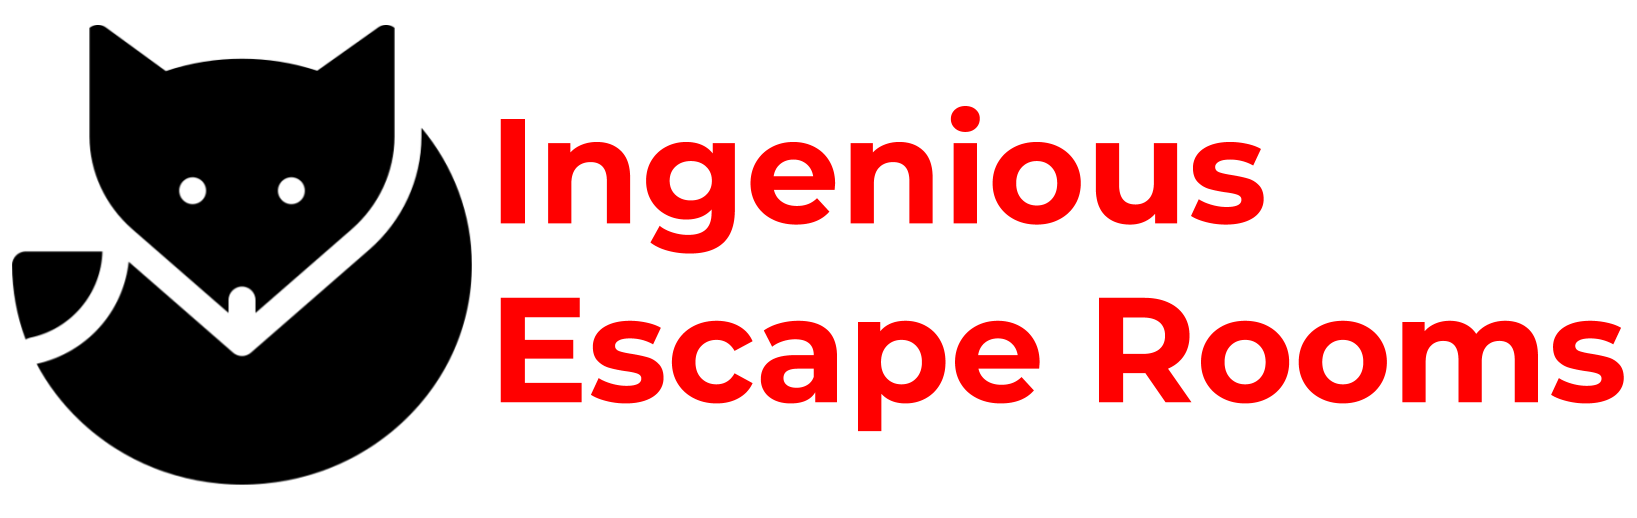 Ingenious Escape Rooms |   Best escape from boredom